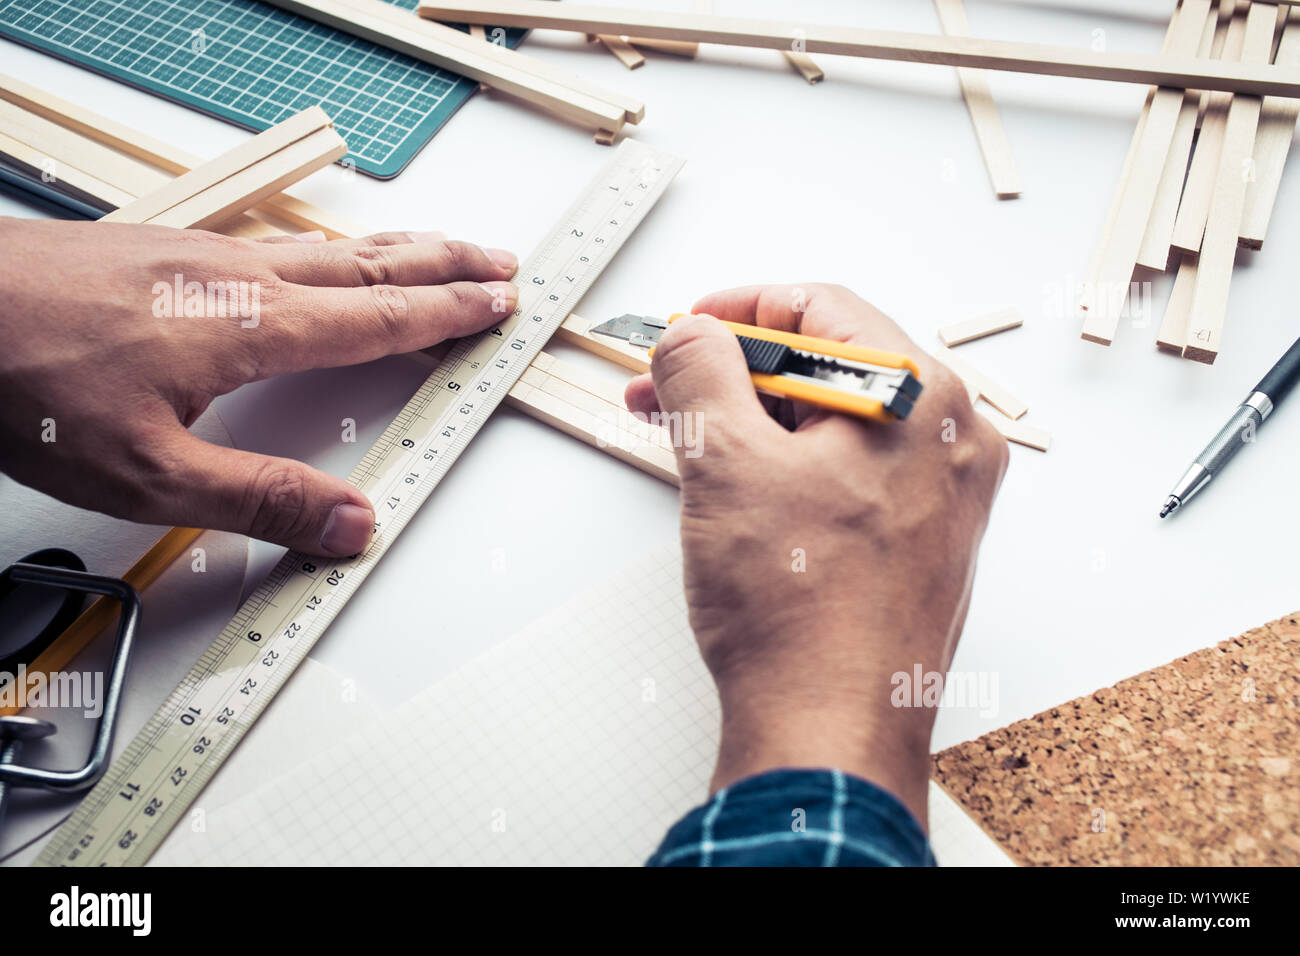 Male working on worktable with balsa wood material.Diy,design project,invention concept ideas Stock Photo